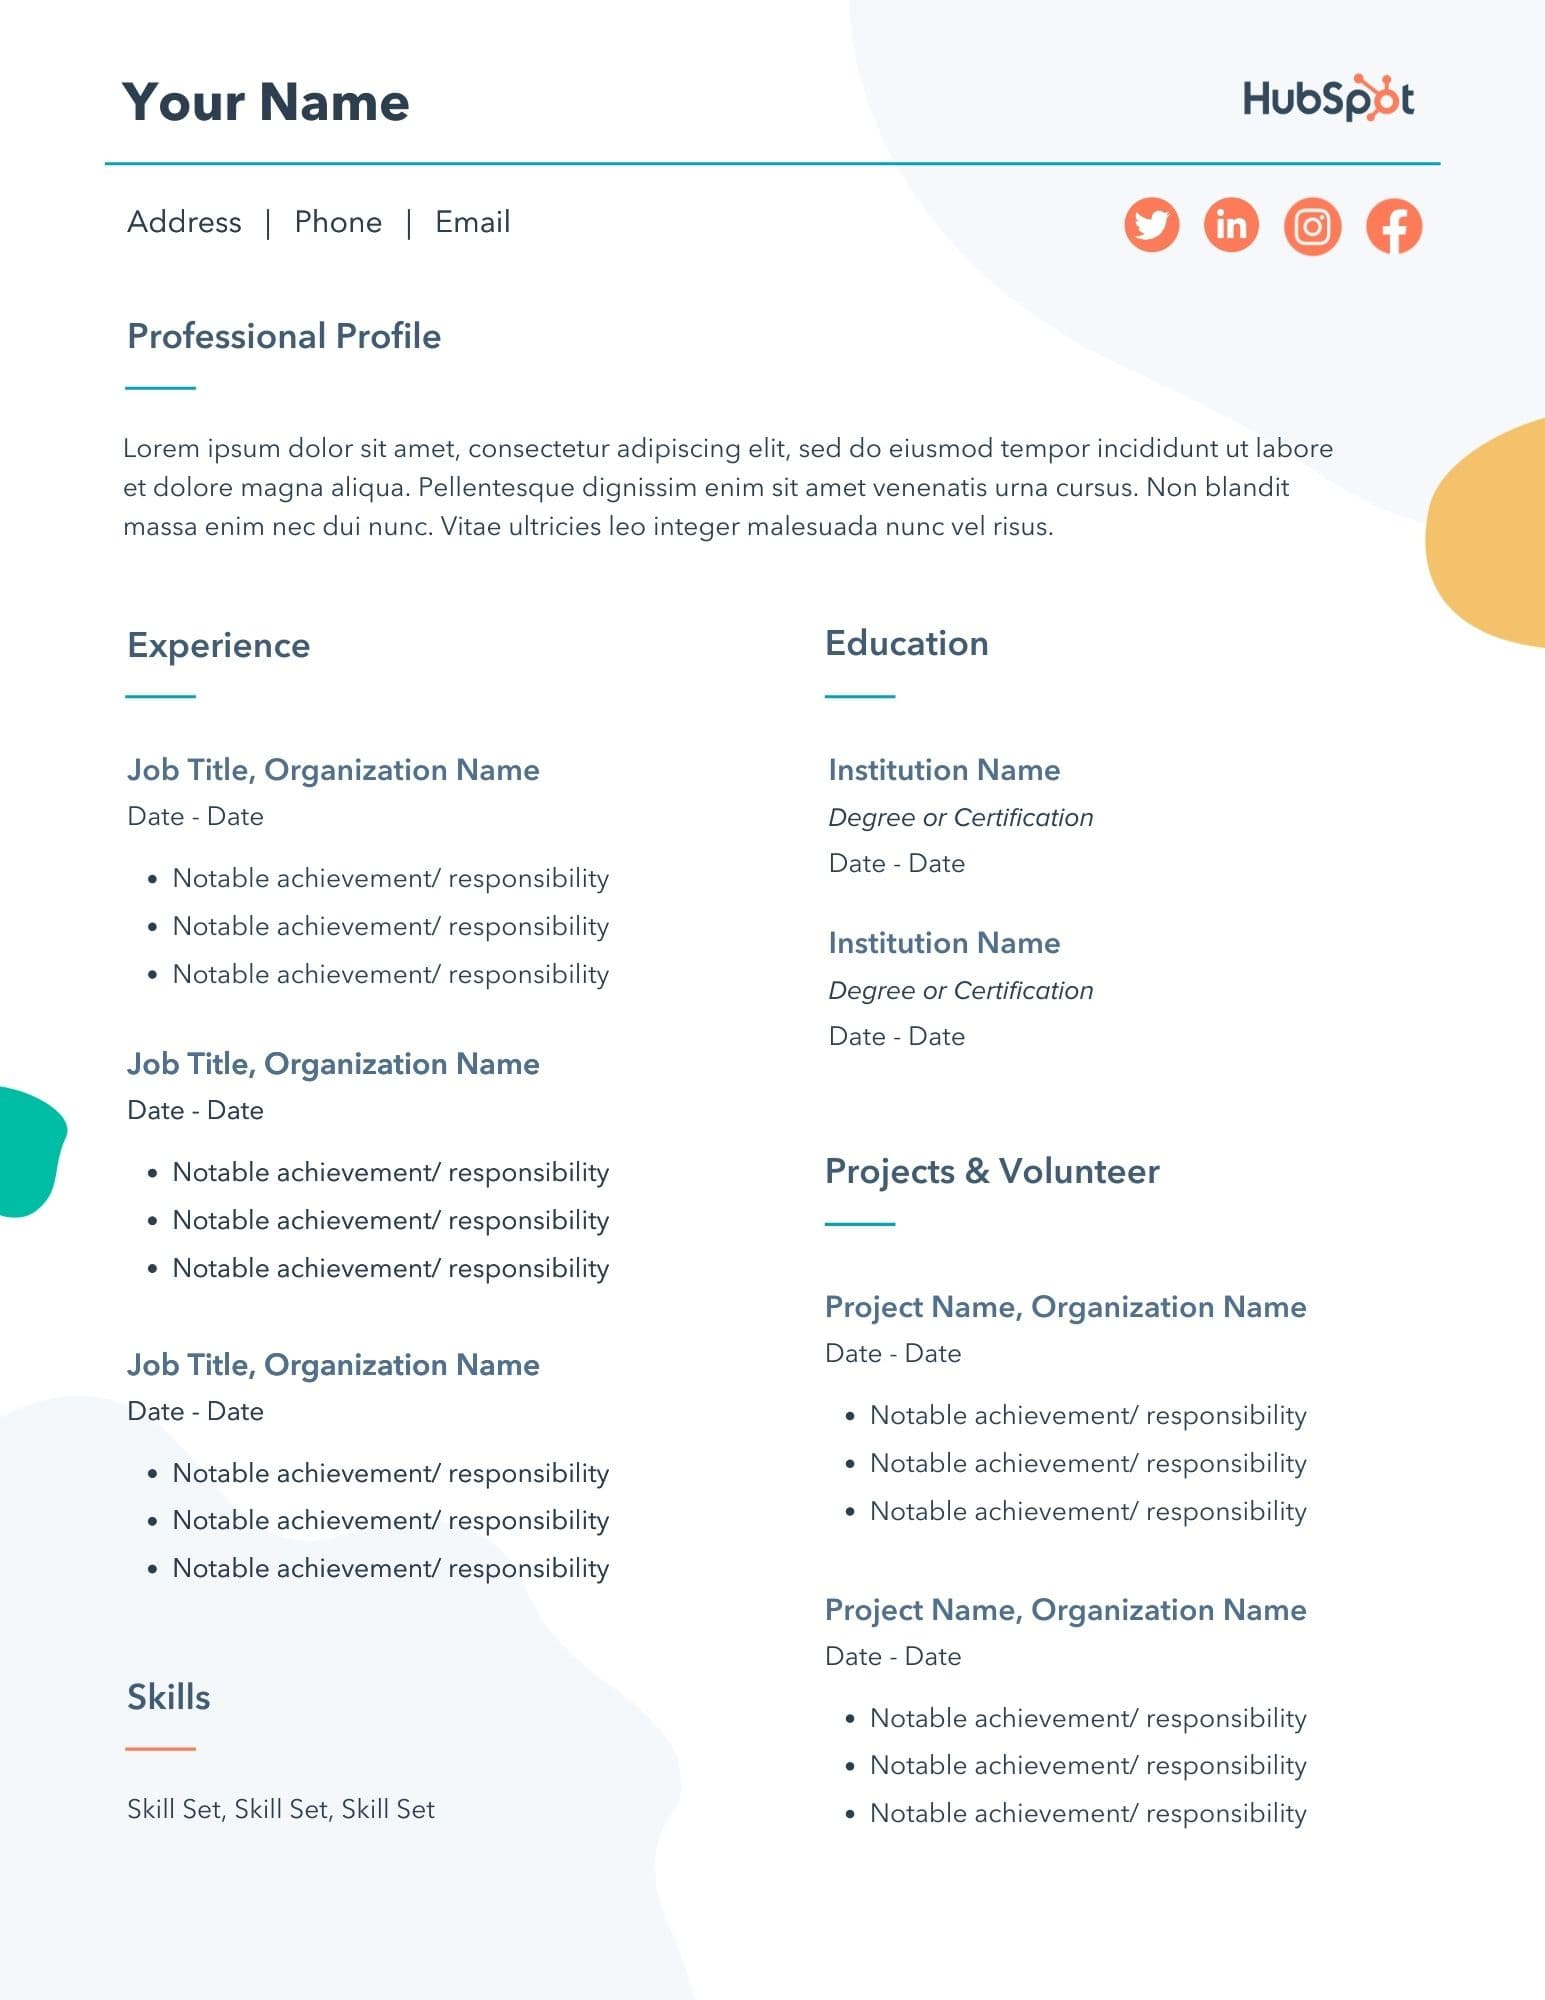 free resume templates for microsoft word to make your own professional business template Resume Professional Business Resume Template